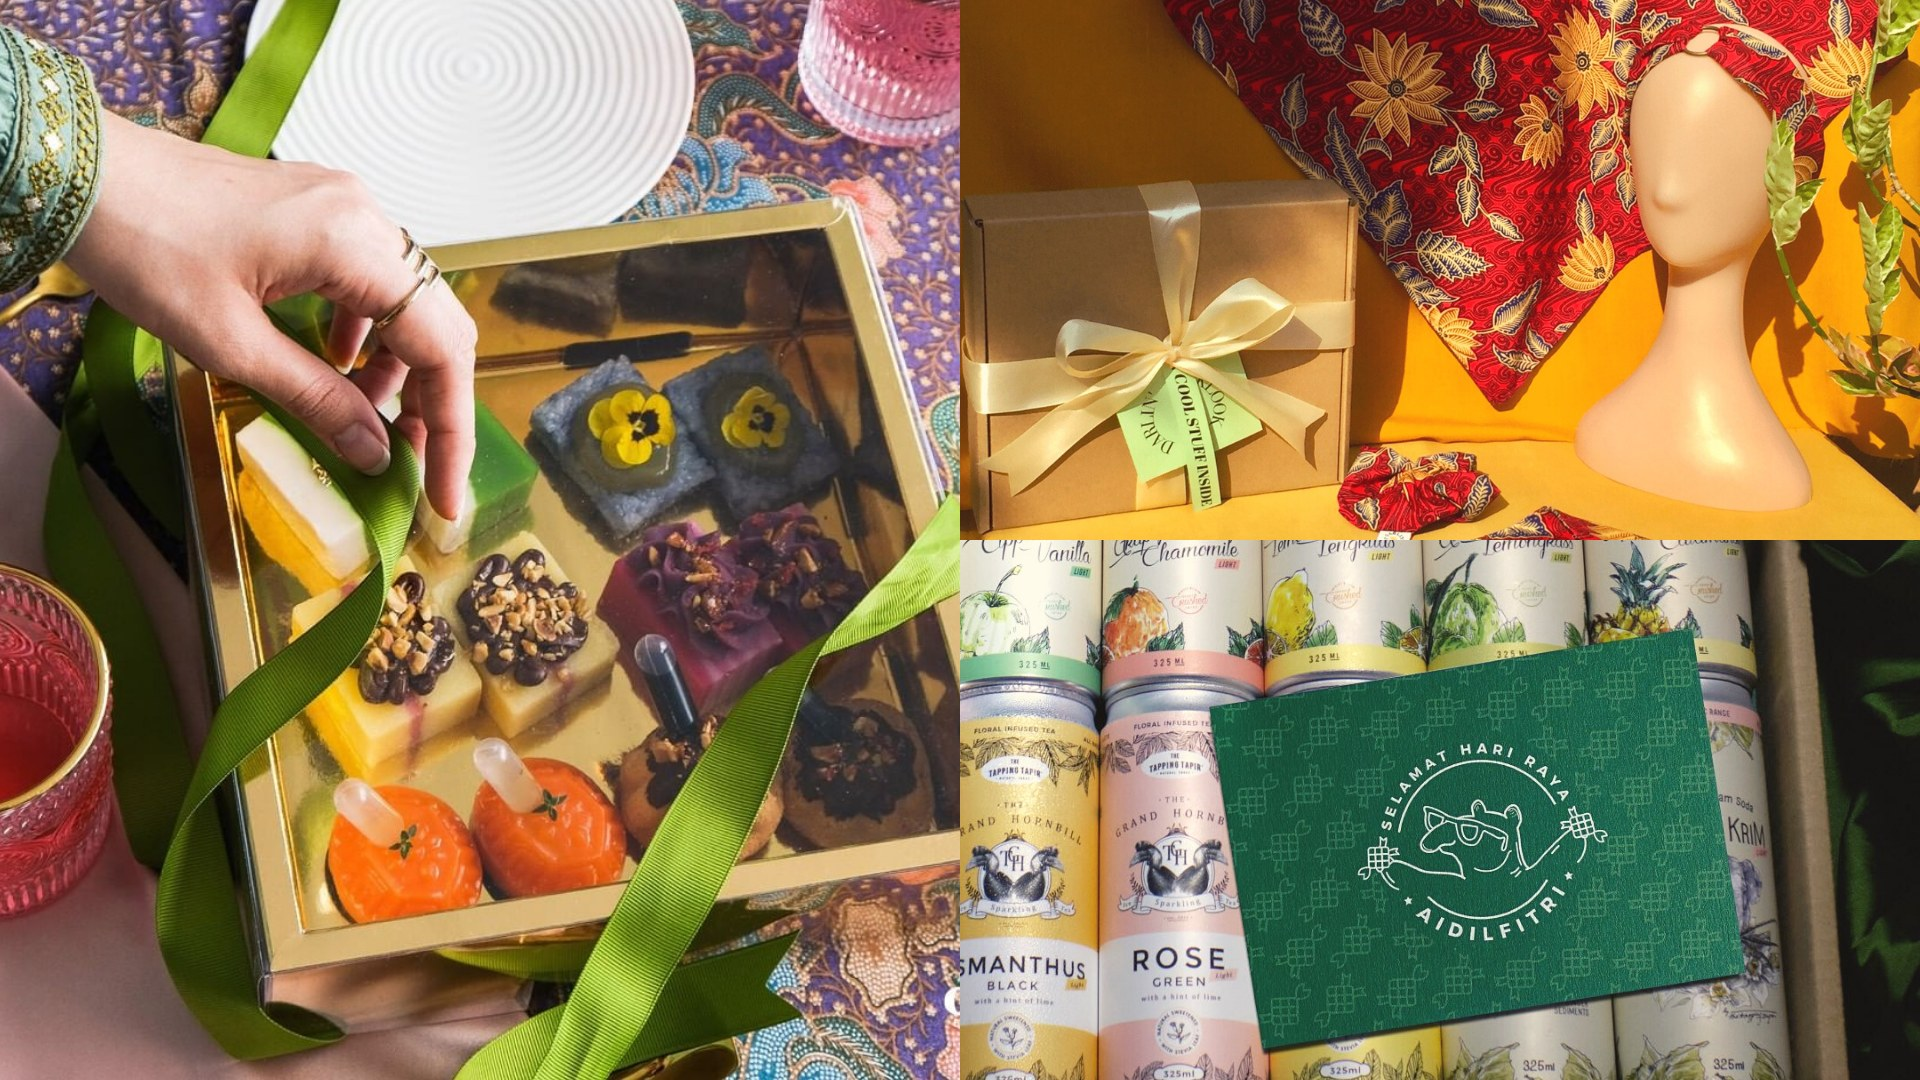 8 Local Businesses In Malaysia To Support This Raya 8 Shop ...